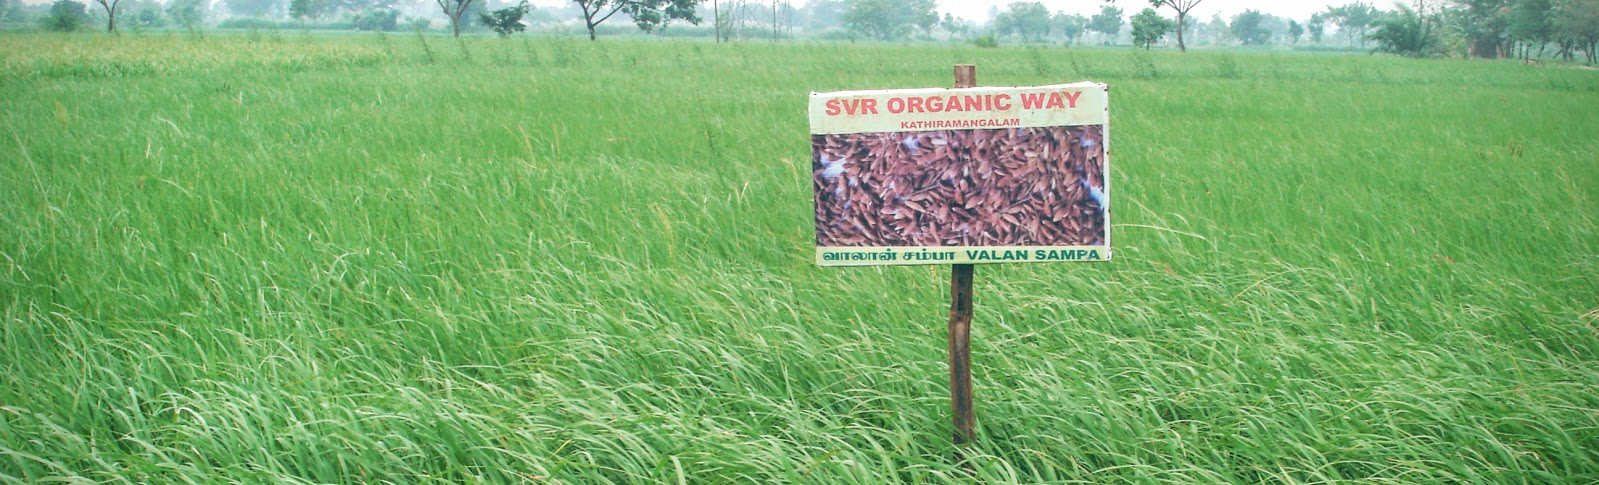 Banner Photo of SVR Organic Way Farm